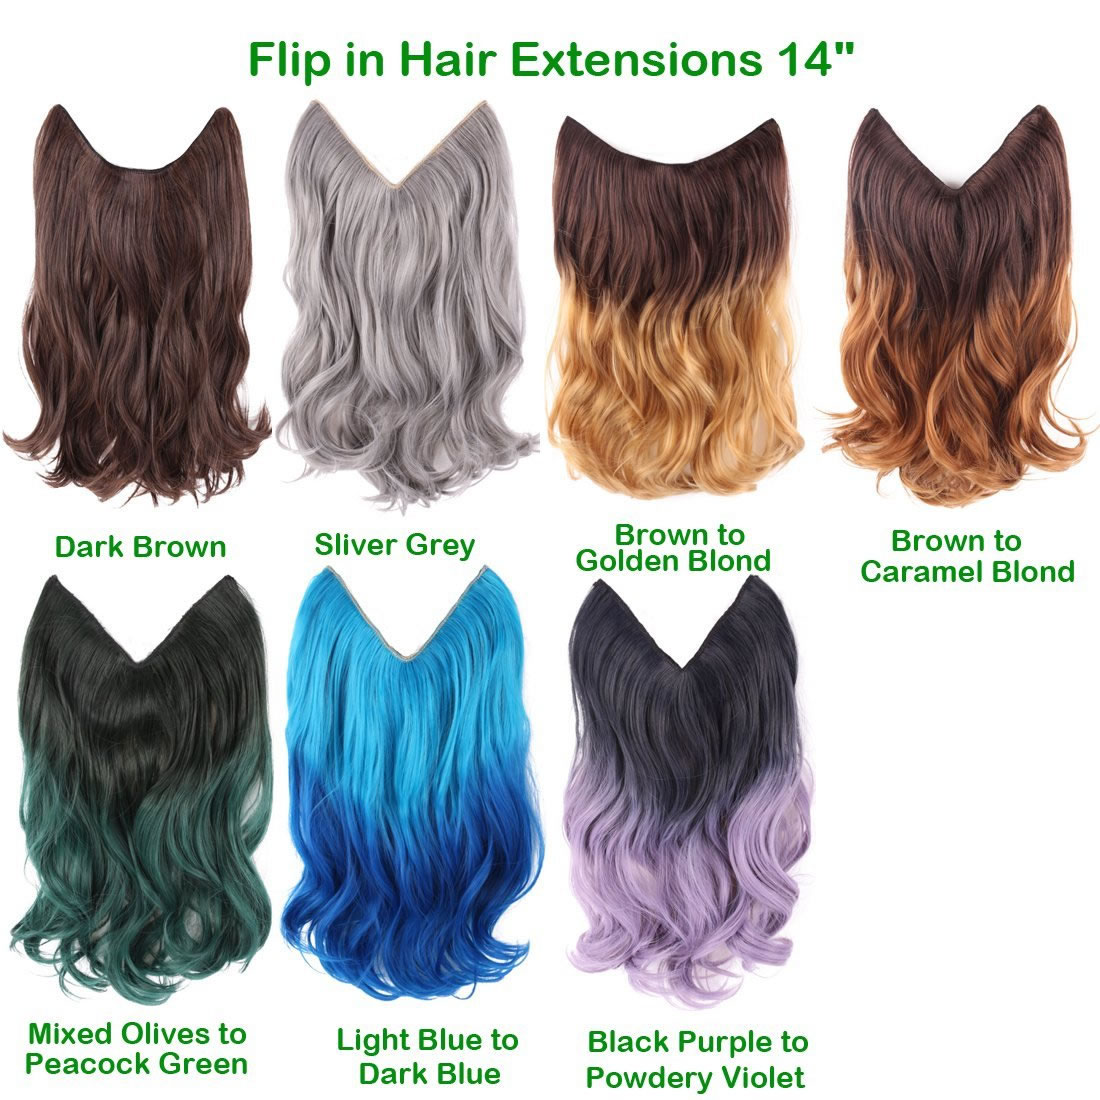 Light Blue To Dark Blue Ombre Color 14 Flip In Hair Extensions